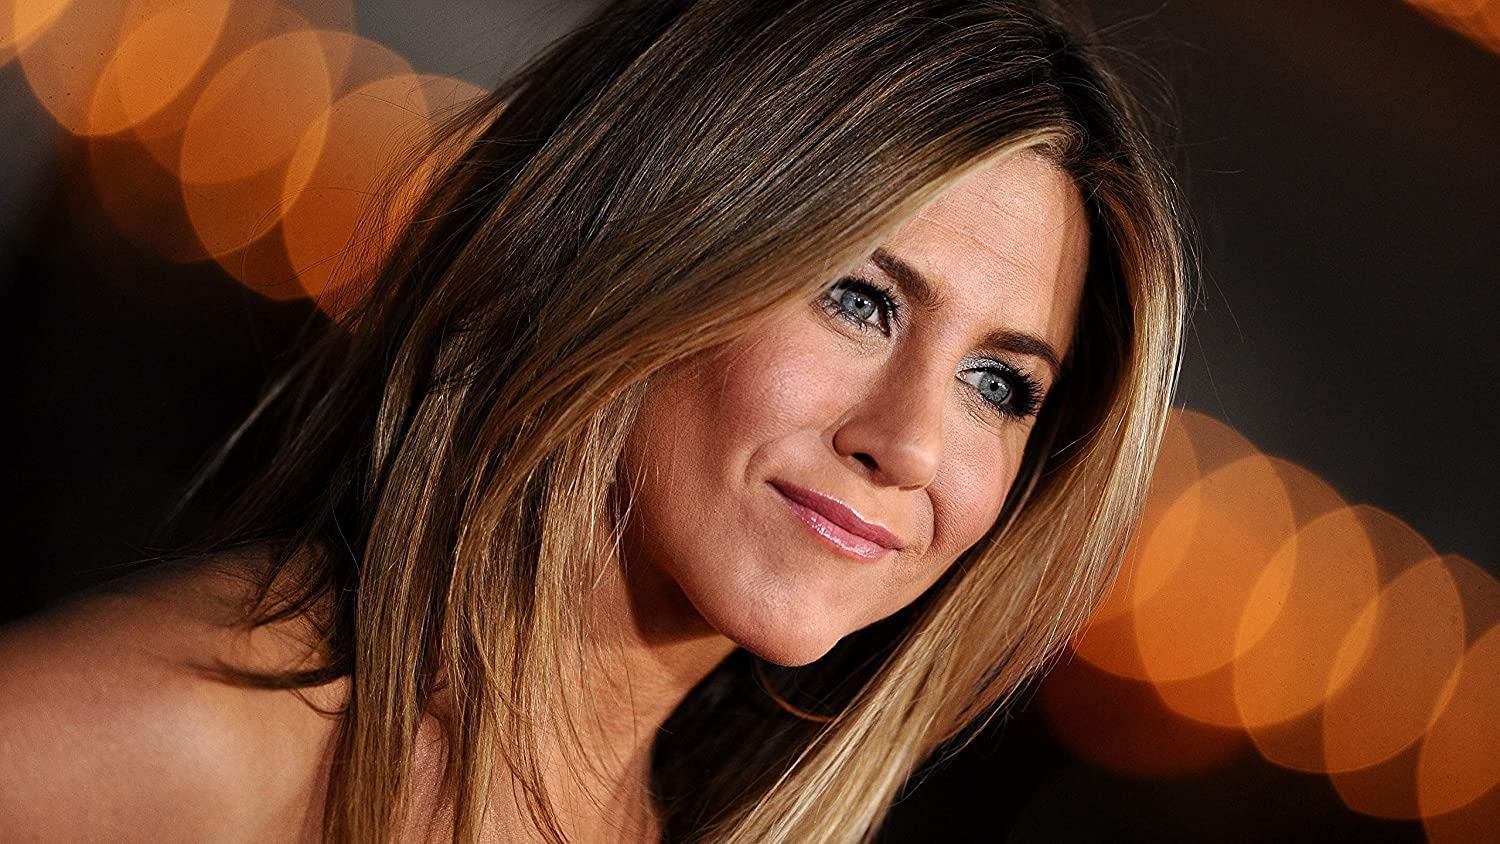 Jennifer Aniston Poster Print Sales of SALE items from Low price new works Pos Art Gift Wall